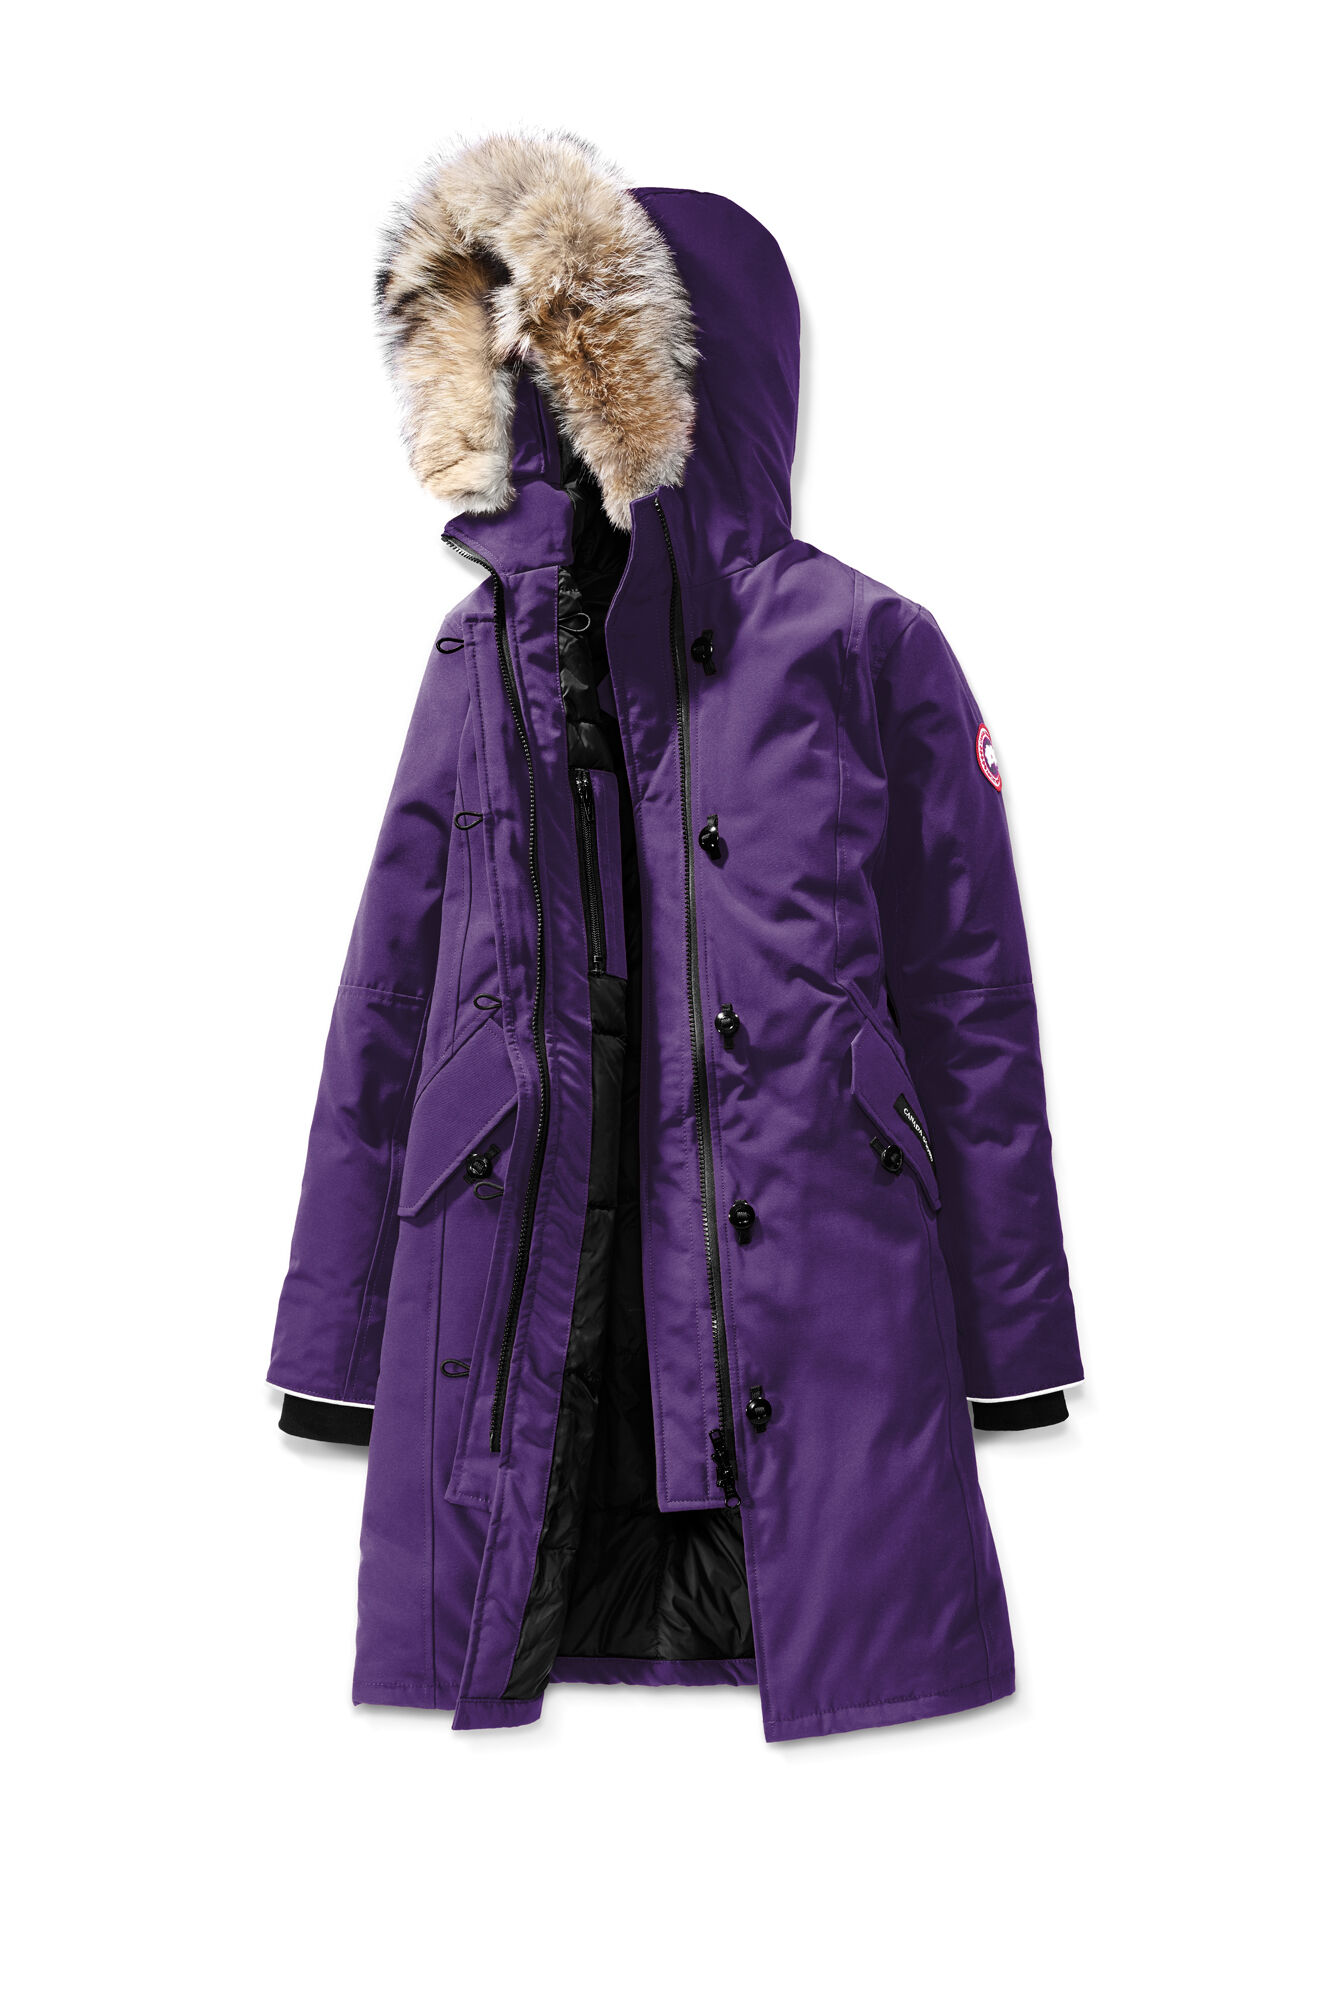 Canada Goose produces extreme weather outerwear since Discover high quality jackets, parkas and accessories designed for women, men and kids. Canada Goose Canada Goose. Free shipping and returns on all orders. Details. Free shipping and returns on all orders.